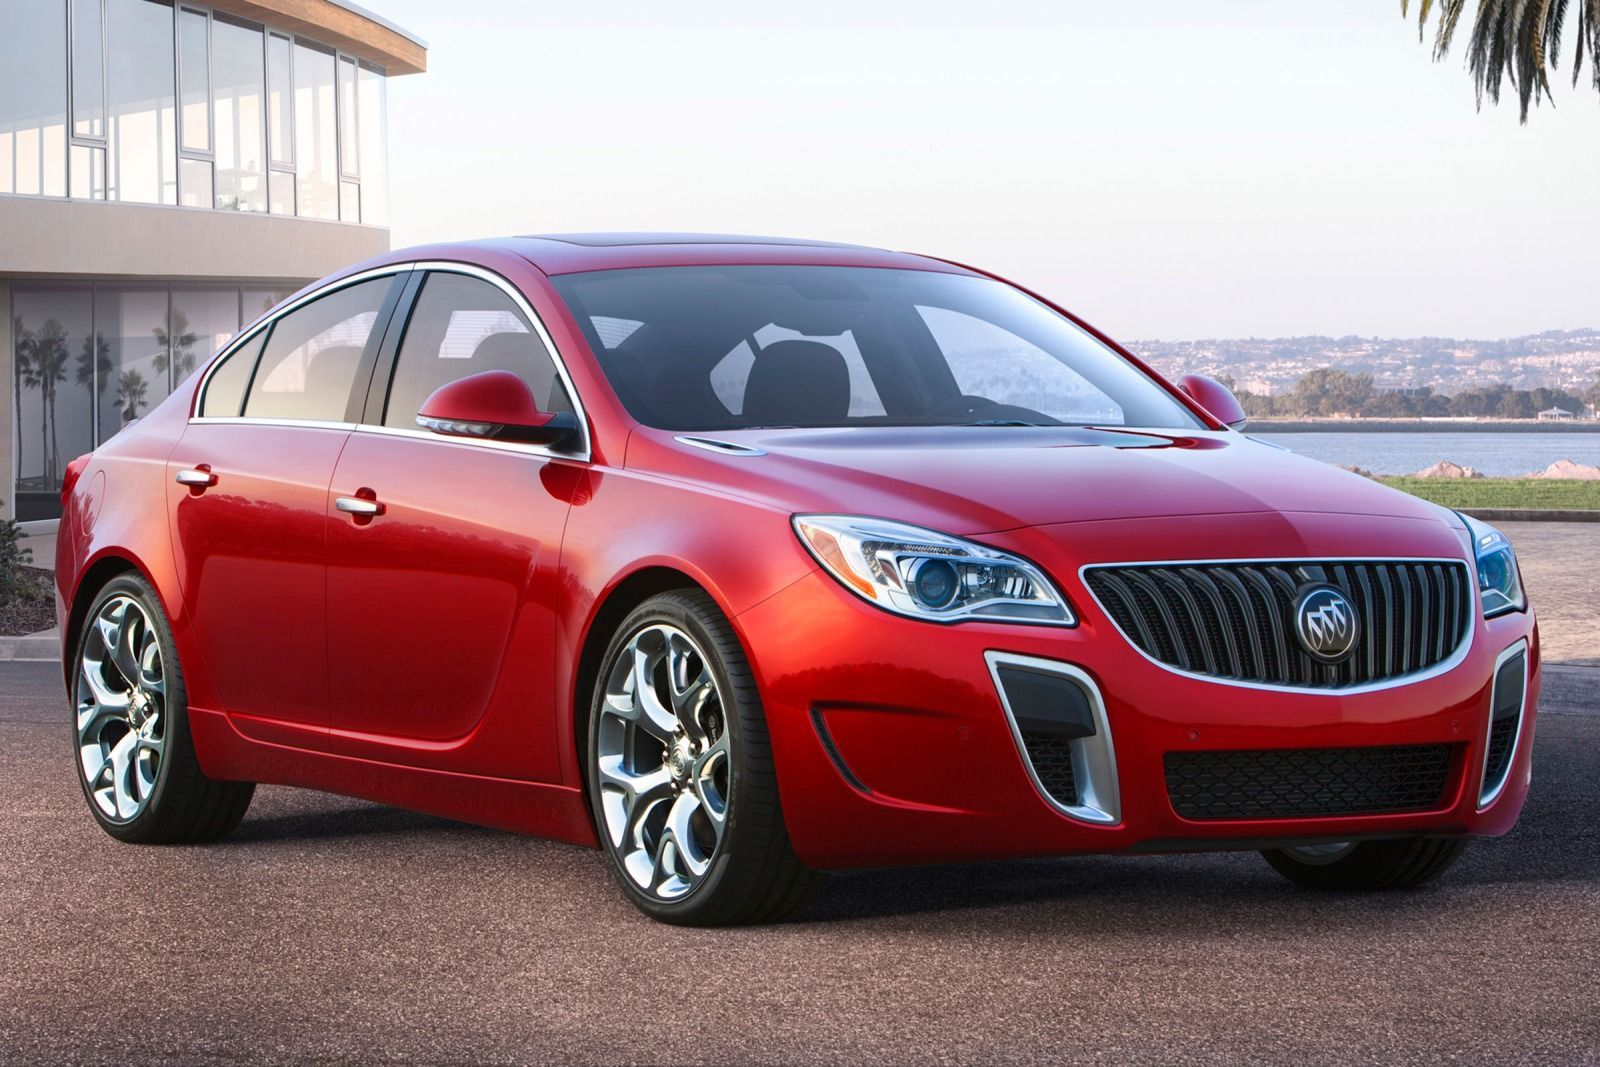 The 2016 Buick Regal Is A Competent And Nimble Midsize Sedan With Pretty Earance